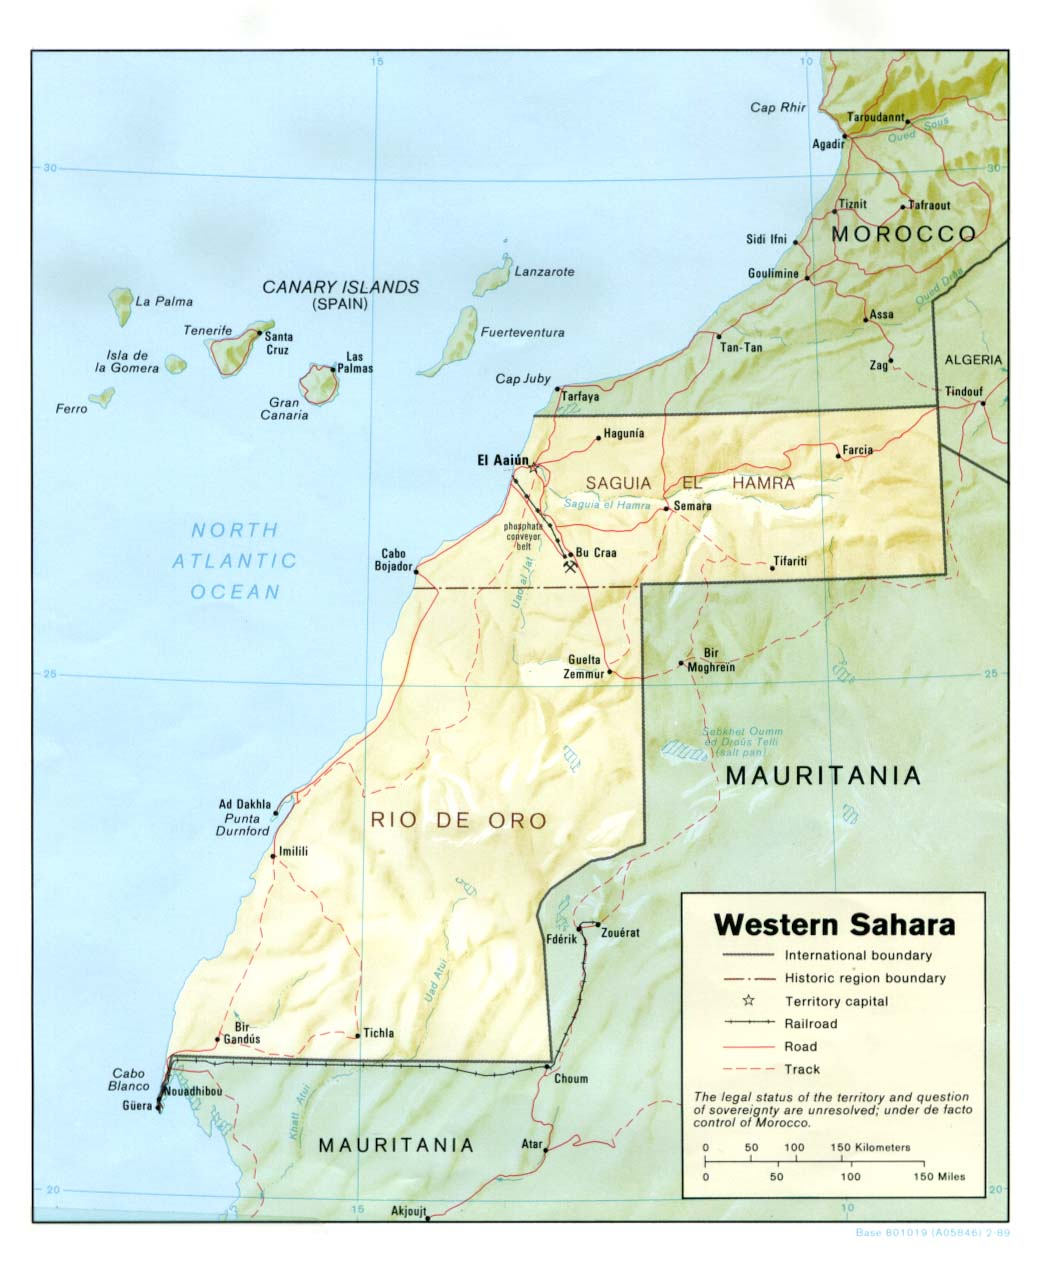 Mapa de Relieve Sombreado del Sahara Occidental